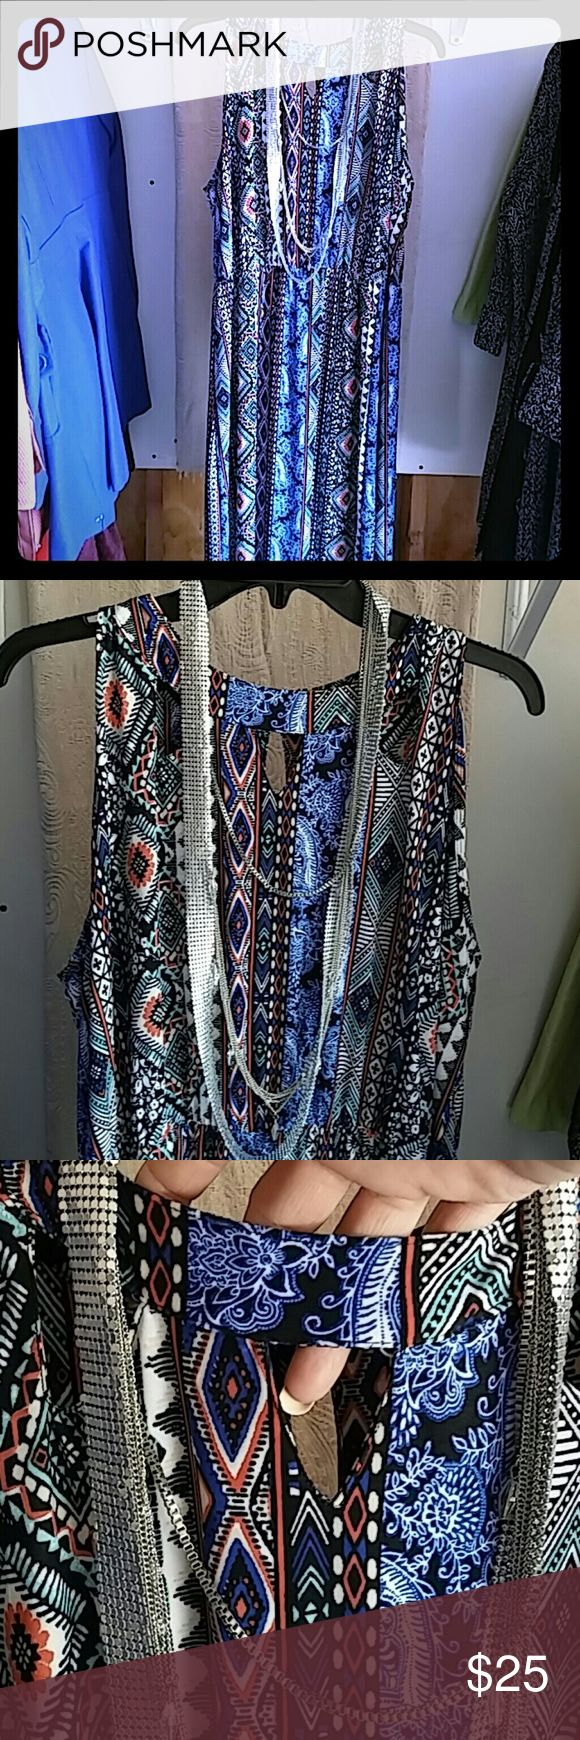 Beautiful sleeveless maxi dress Light weight, sleeveless maxi dress. Perfect for summer. Ankle length. Cutout embellishments around the neckline. Colorful Aztec design. Match this dress up with some metallic sandals and sparkling jewelry and you are ready for the day...or evening. French Laundry Dresses Maxi